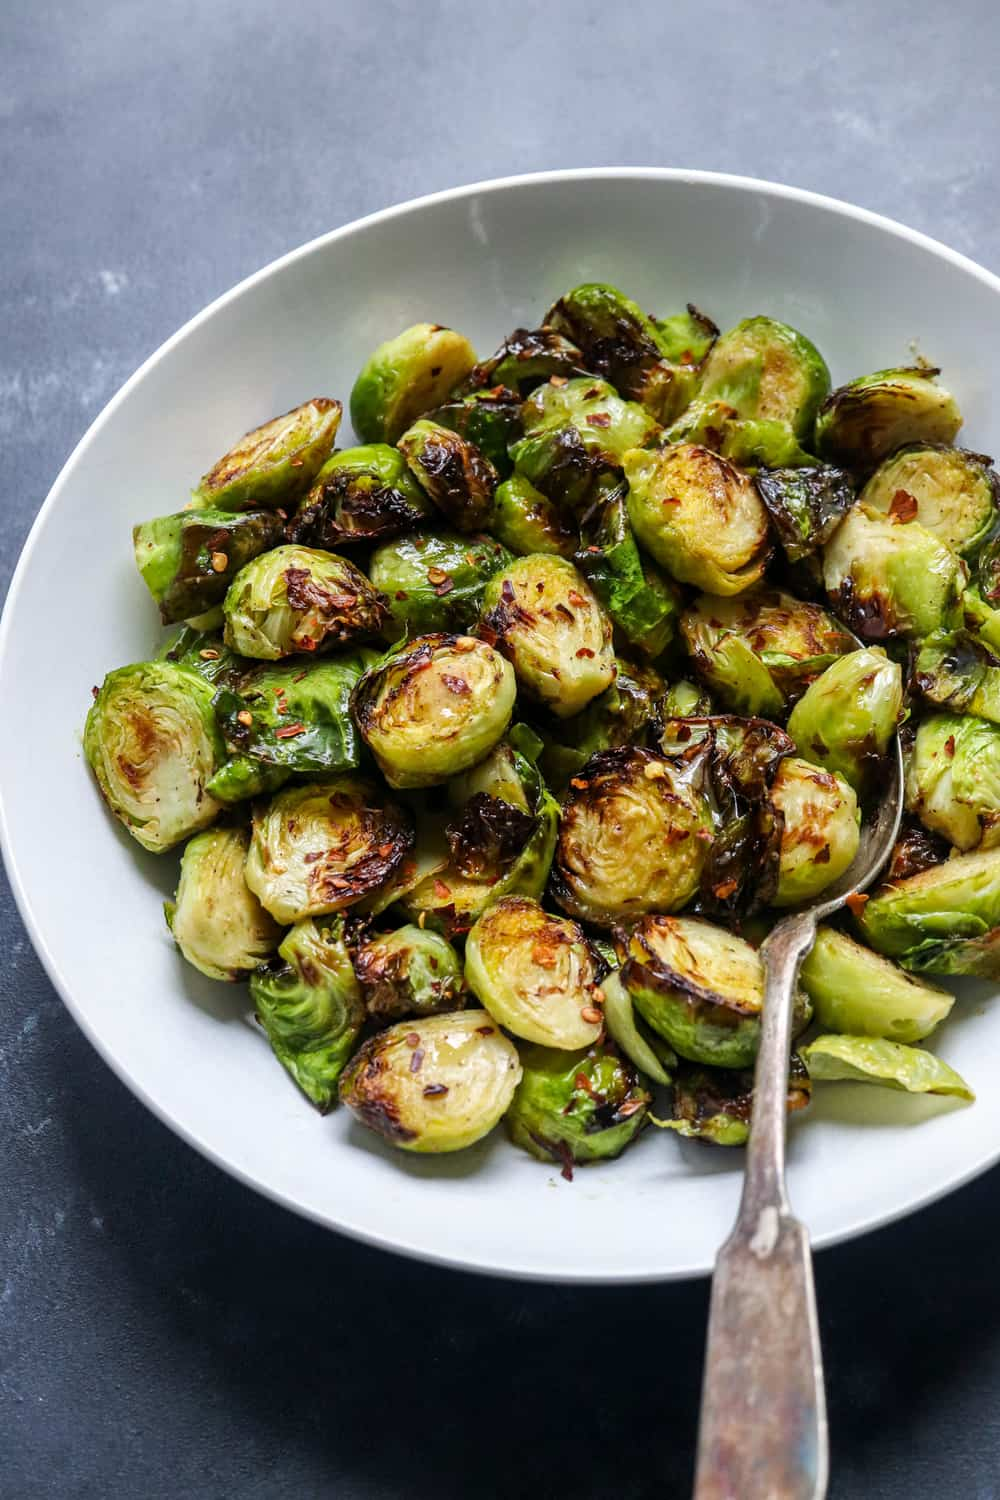 Large bowl of crispy baked Brussel sprouts